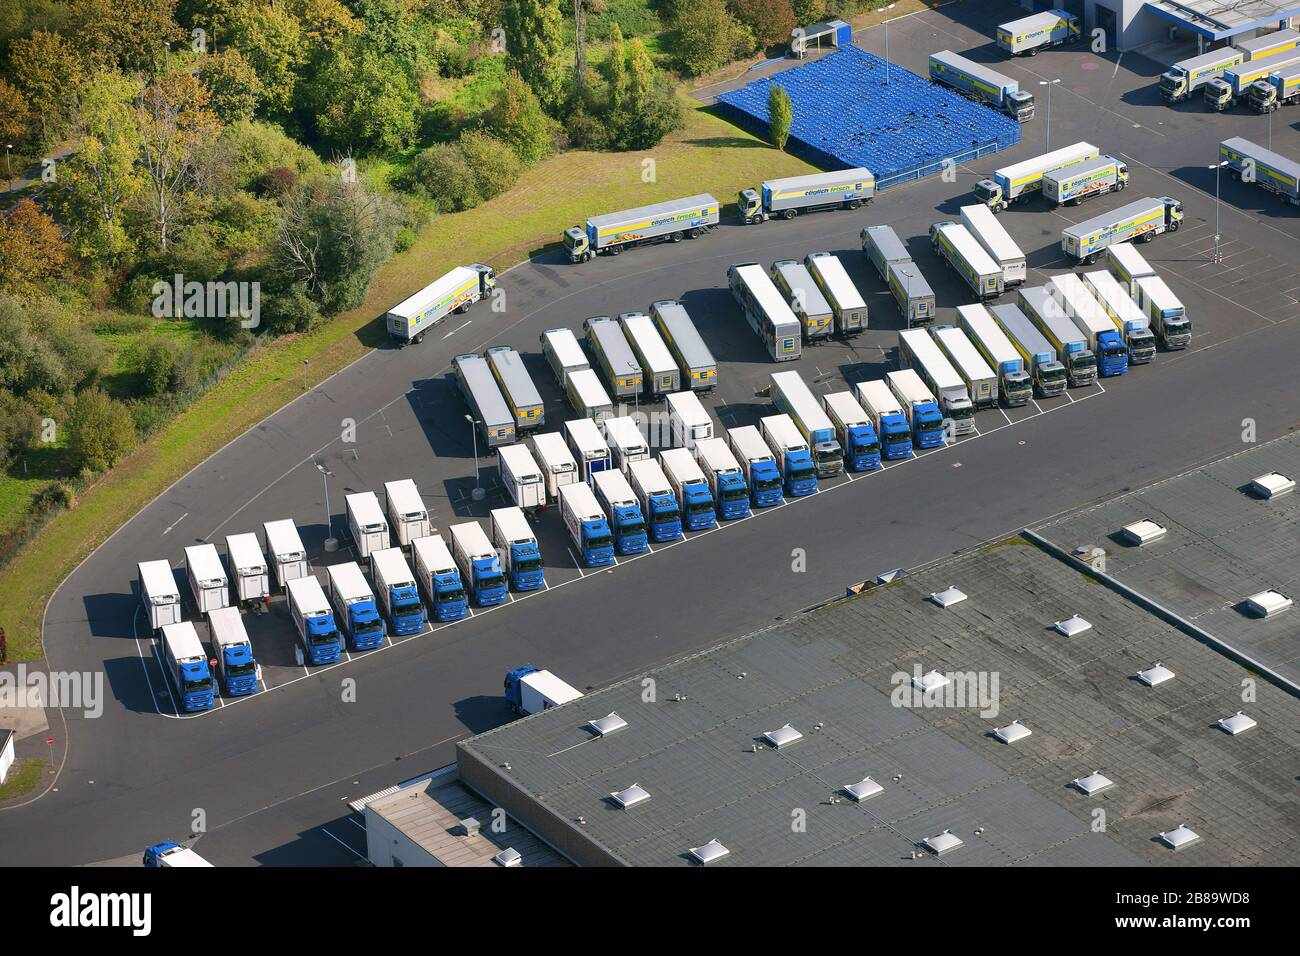 Truck Parking Lots High Resolution Stock Photography And Images Alamy